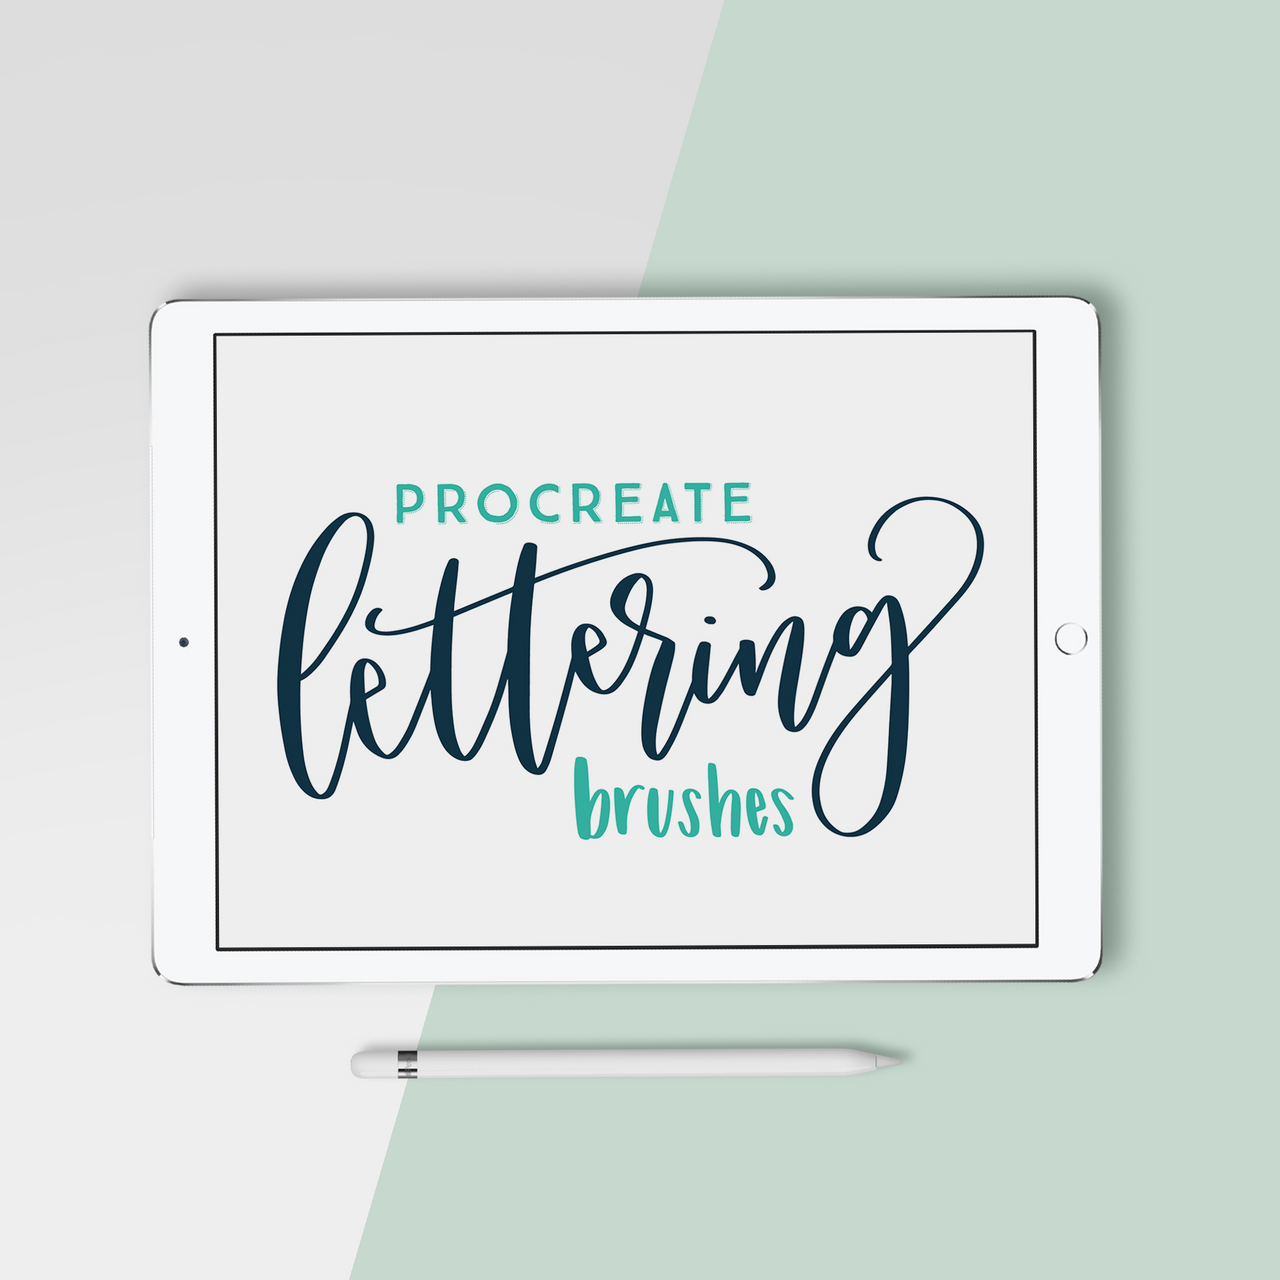 Pack of 10 Essential Procreate Brushes - Hewitt Avenue